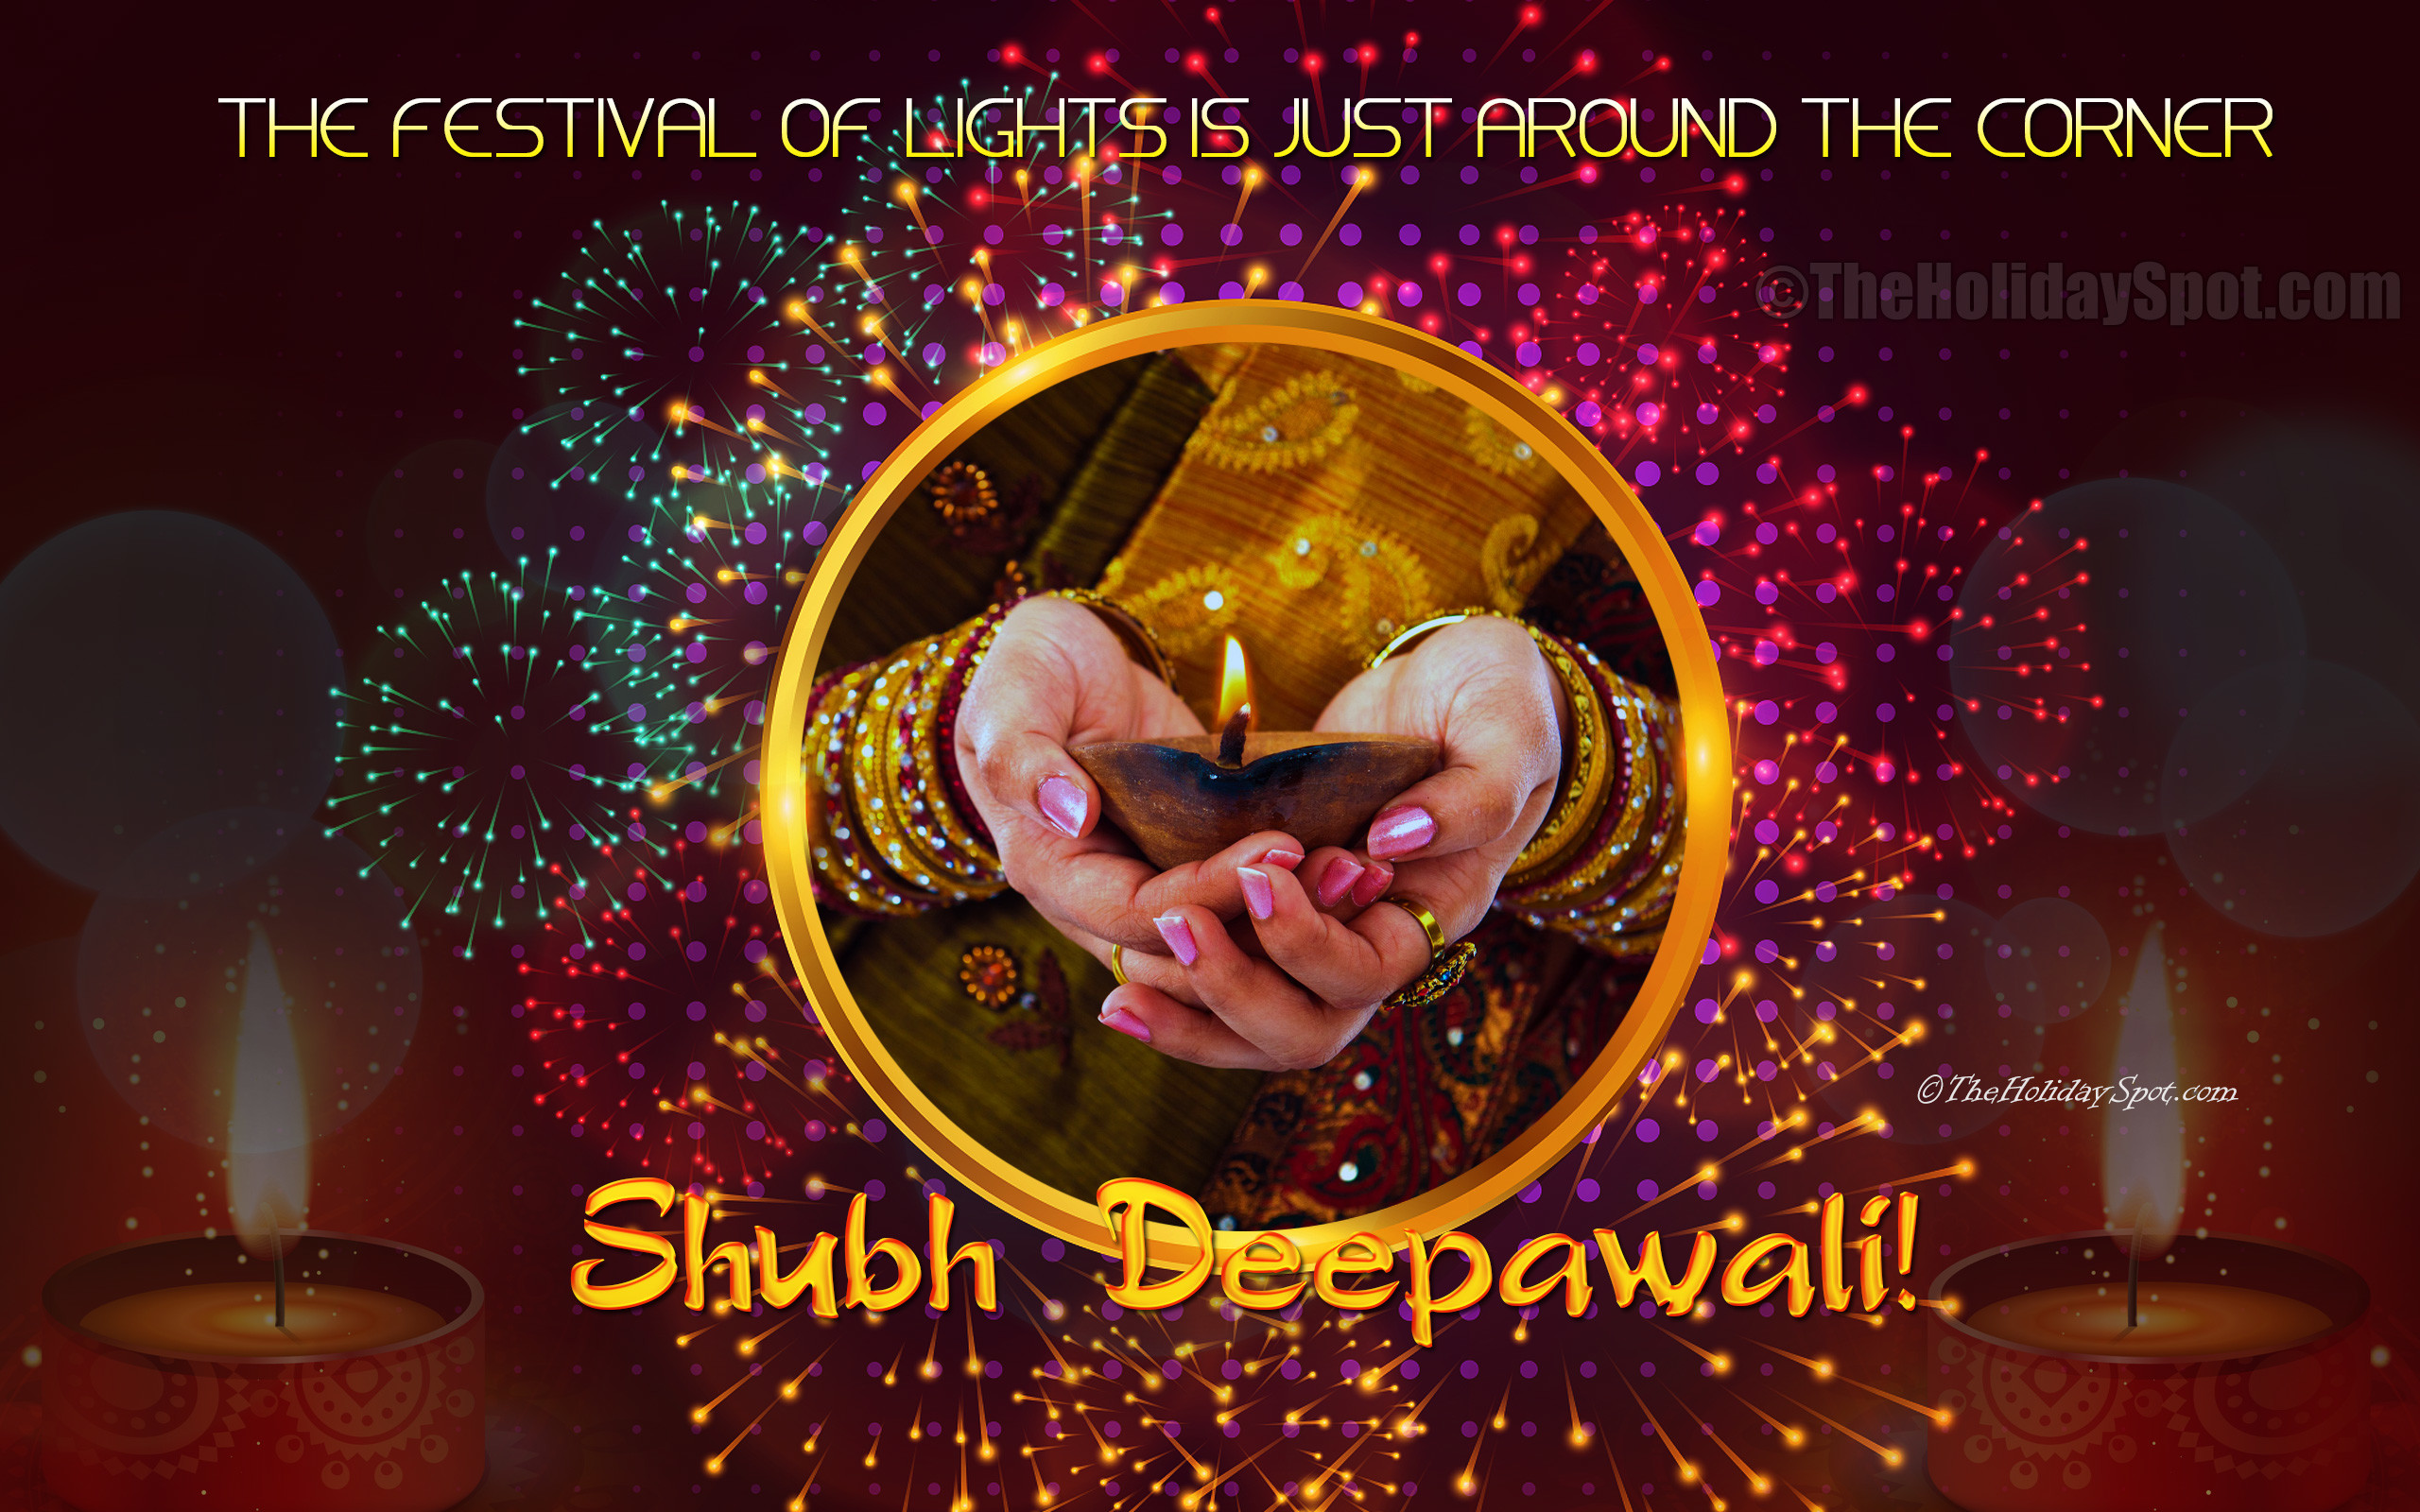 Res: 2560x1600, Shubh Deepawali, the Festival of Lights